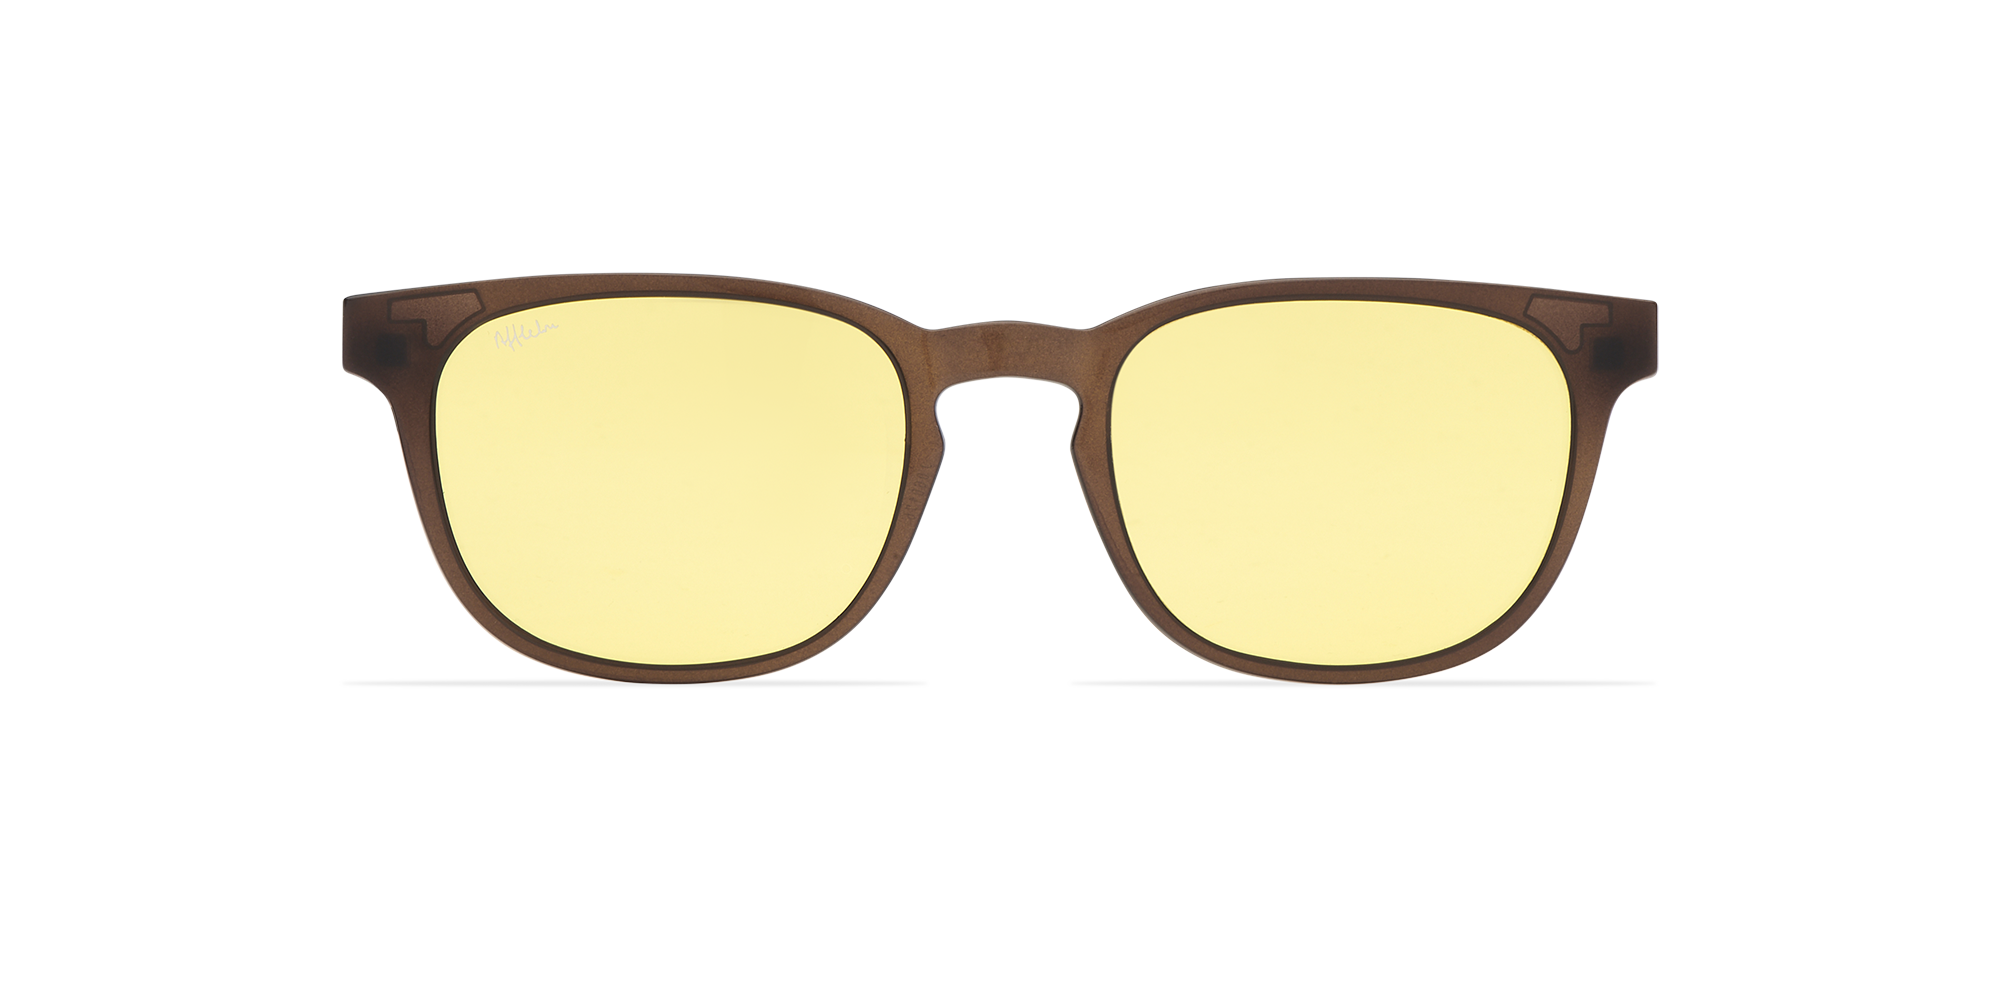 afflelou/france/products/smart_clip/clips_glasses/TMK33YEGY015120.png